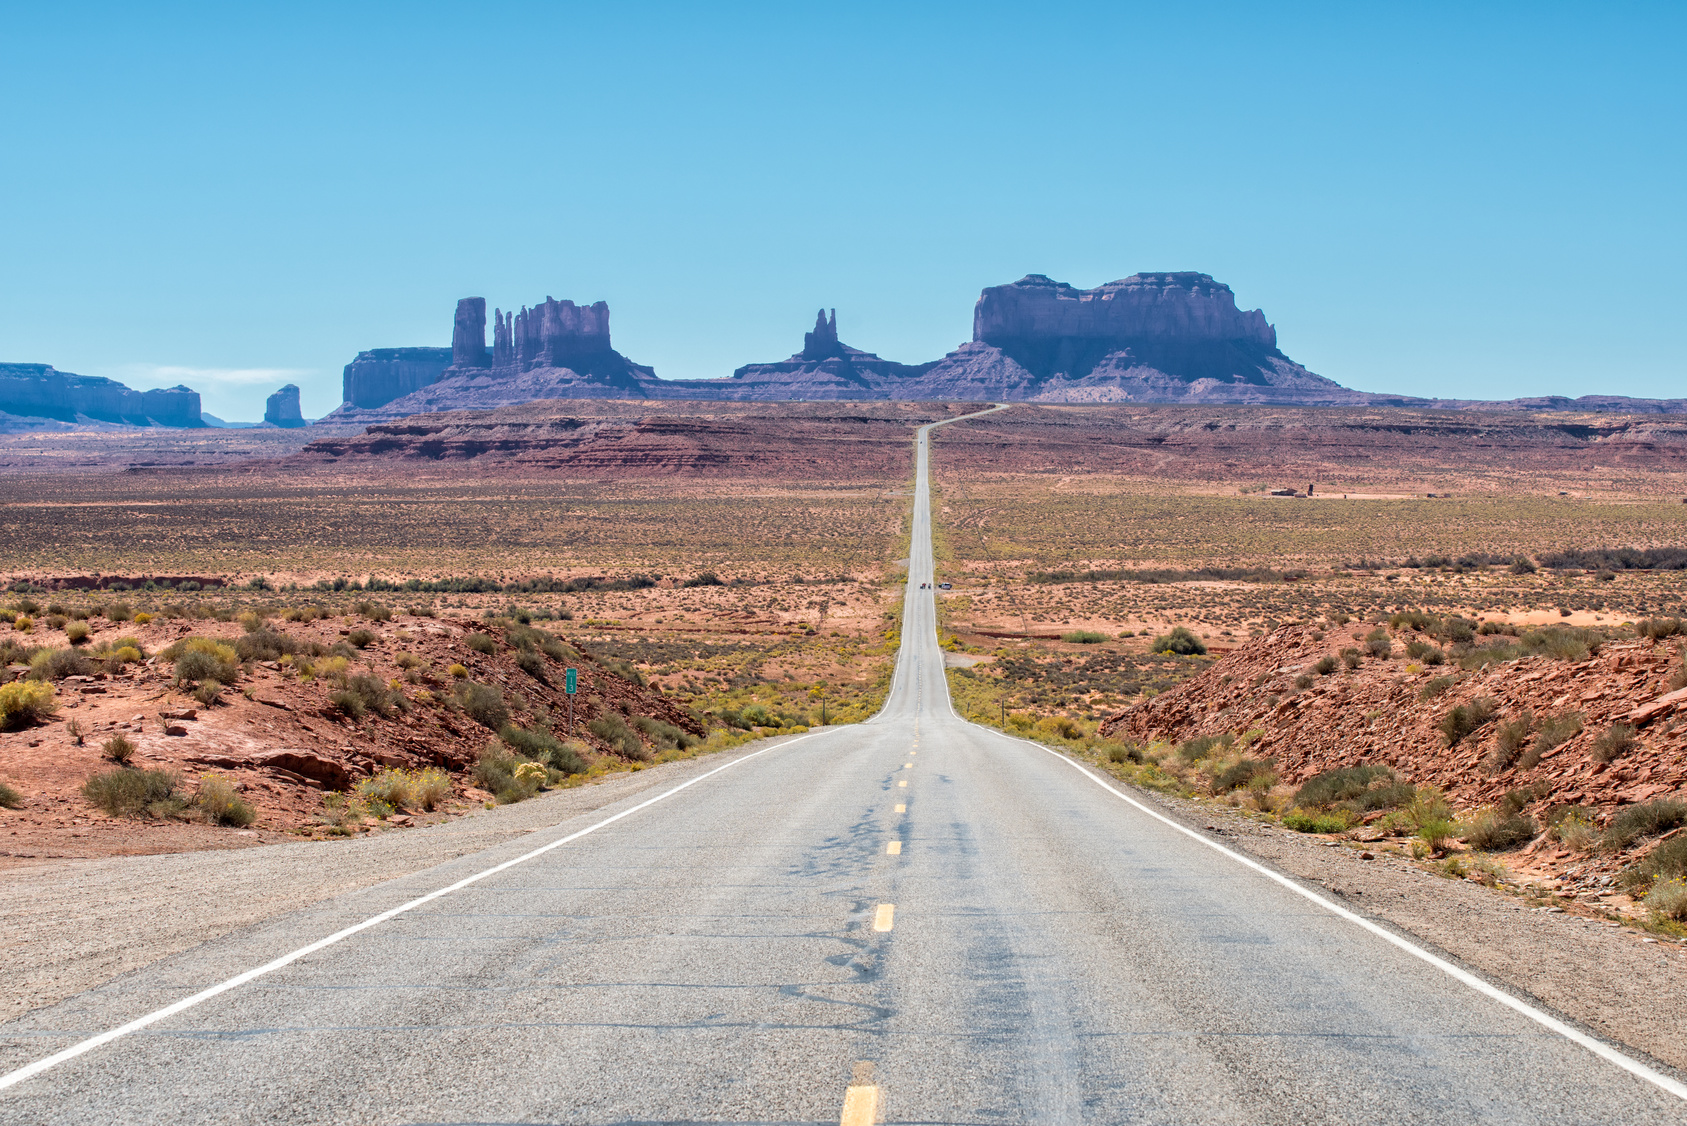 Classic entrance to Monument Valley from Utah